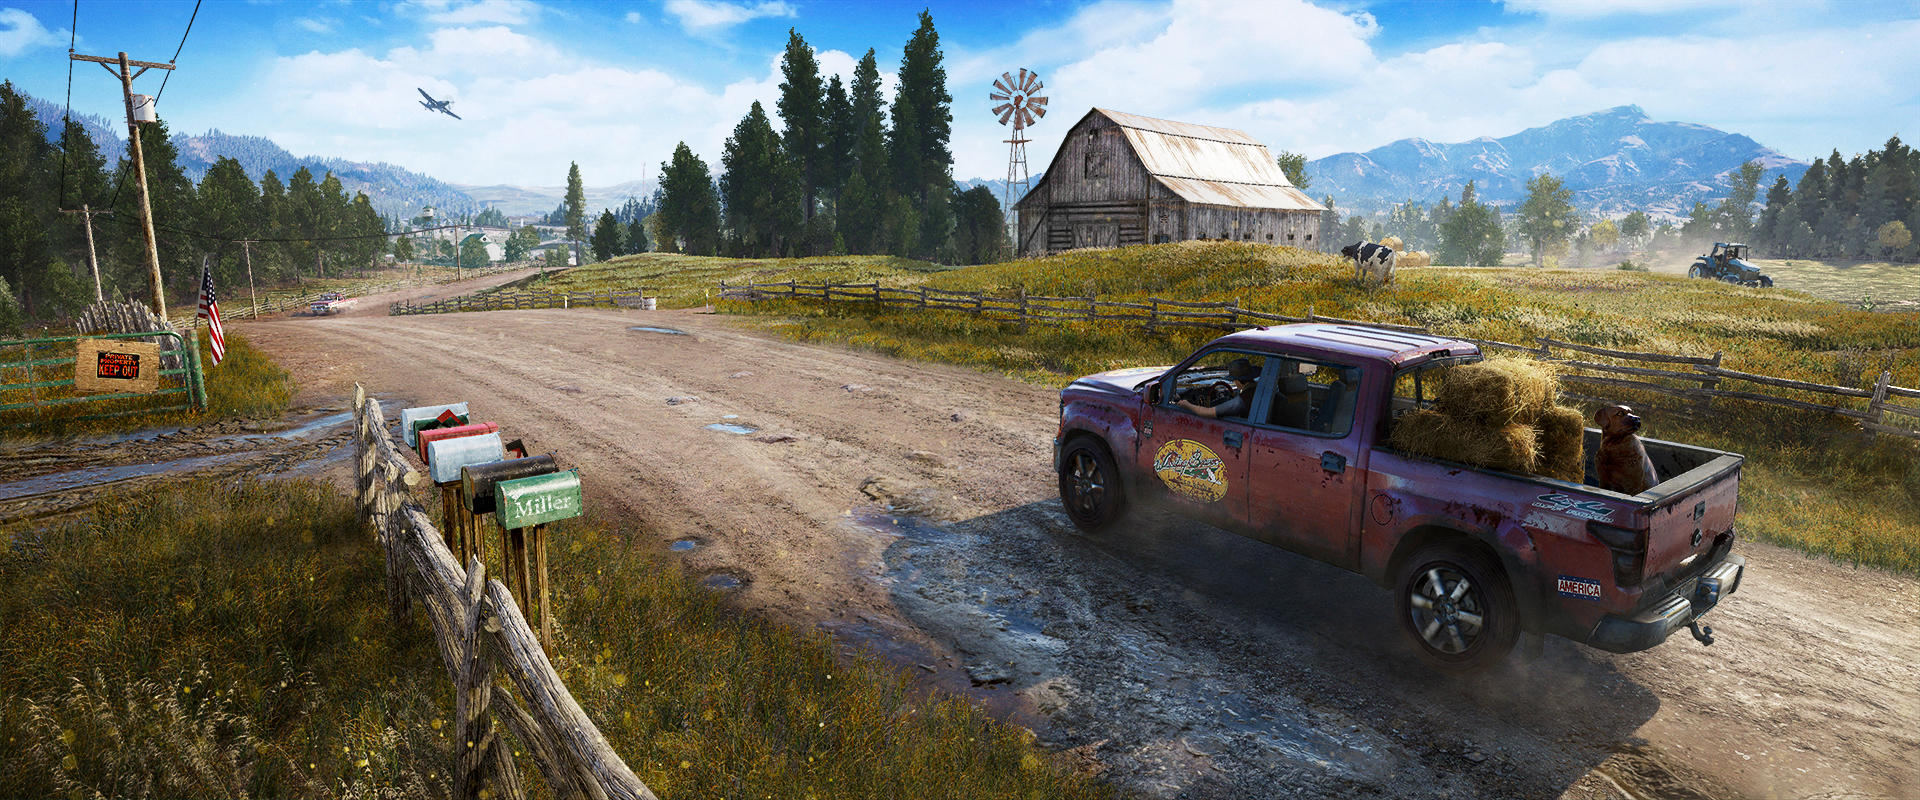 Far Cry 5 PS3 & Xbox 360 Release Details | Gameratedgames